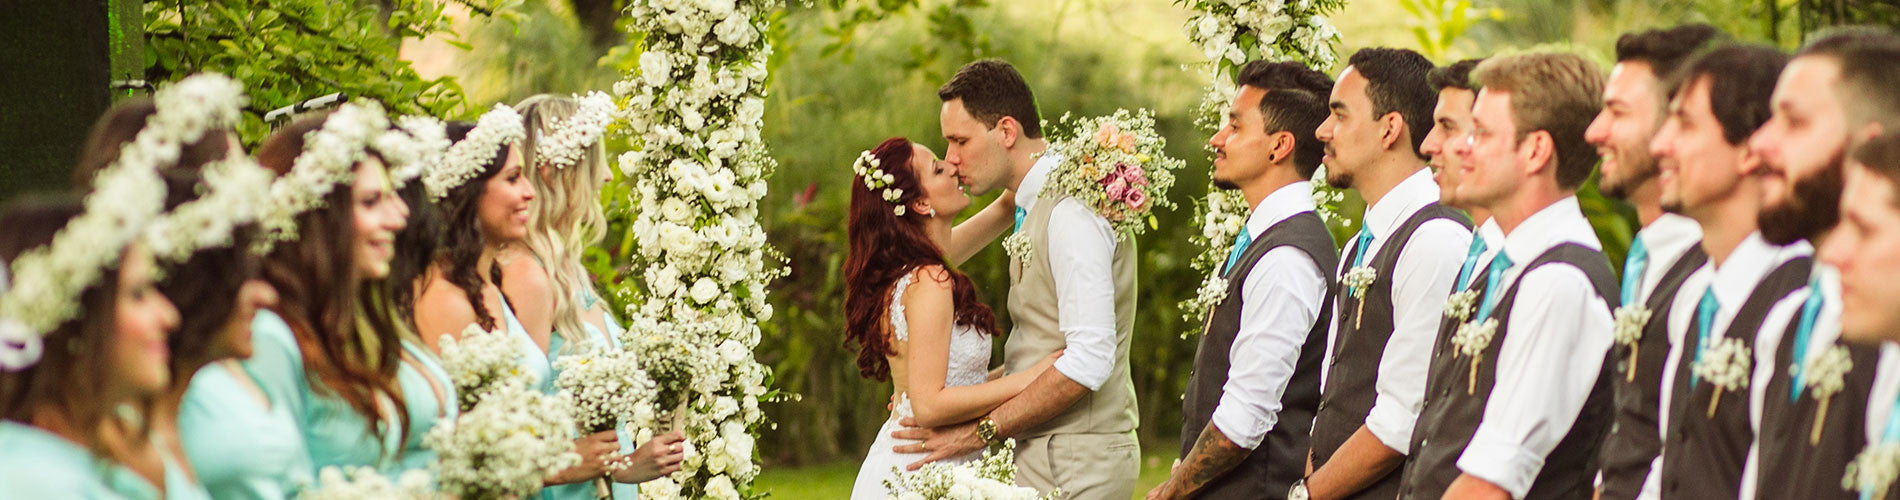 couple getting married under flower arch